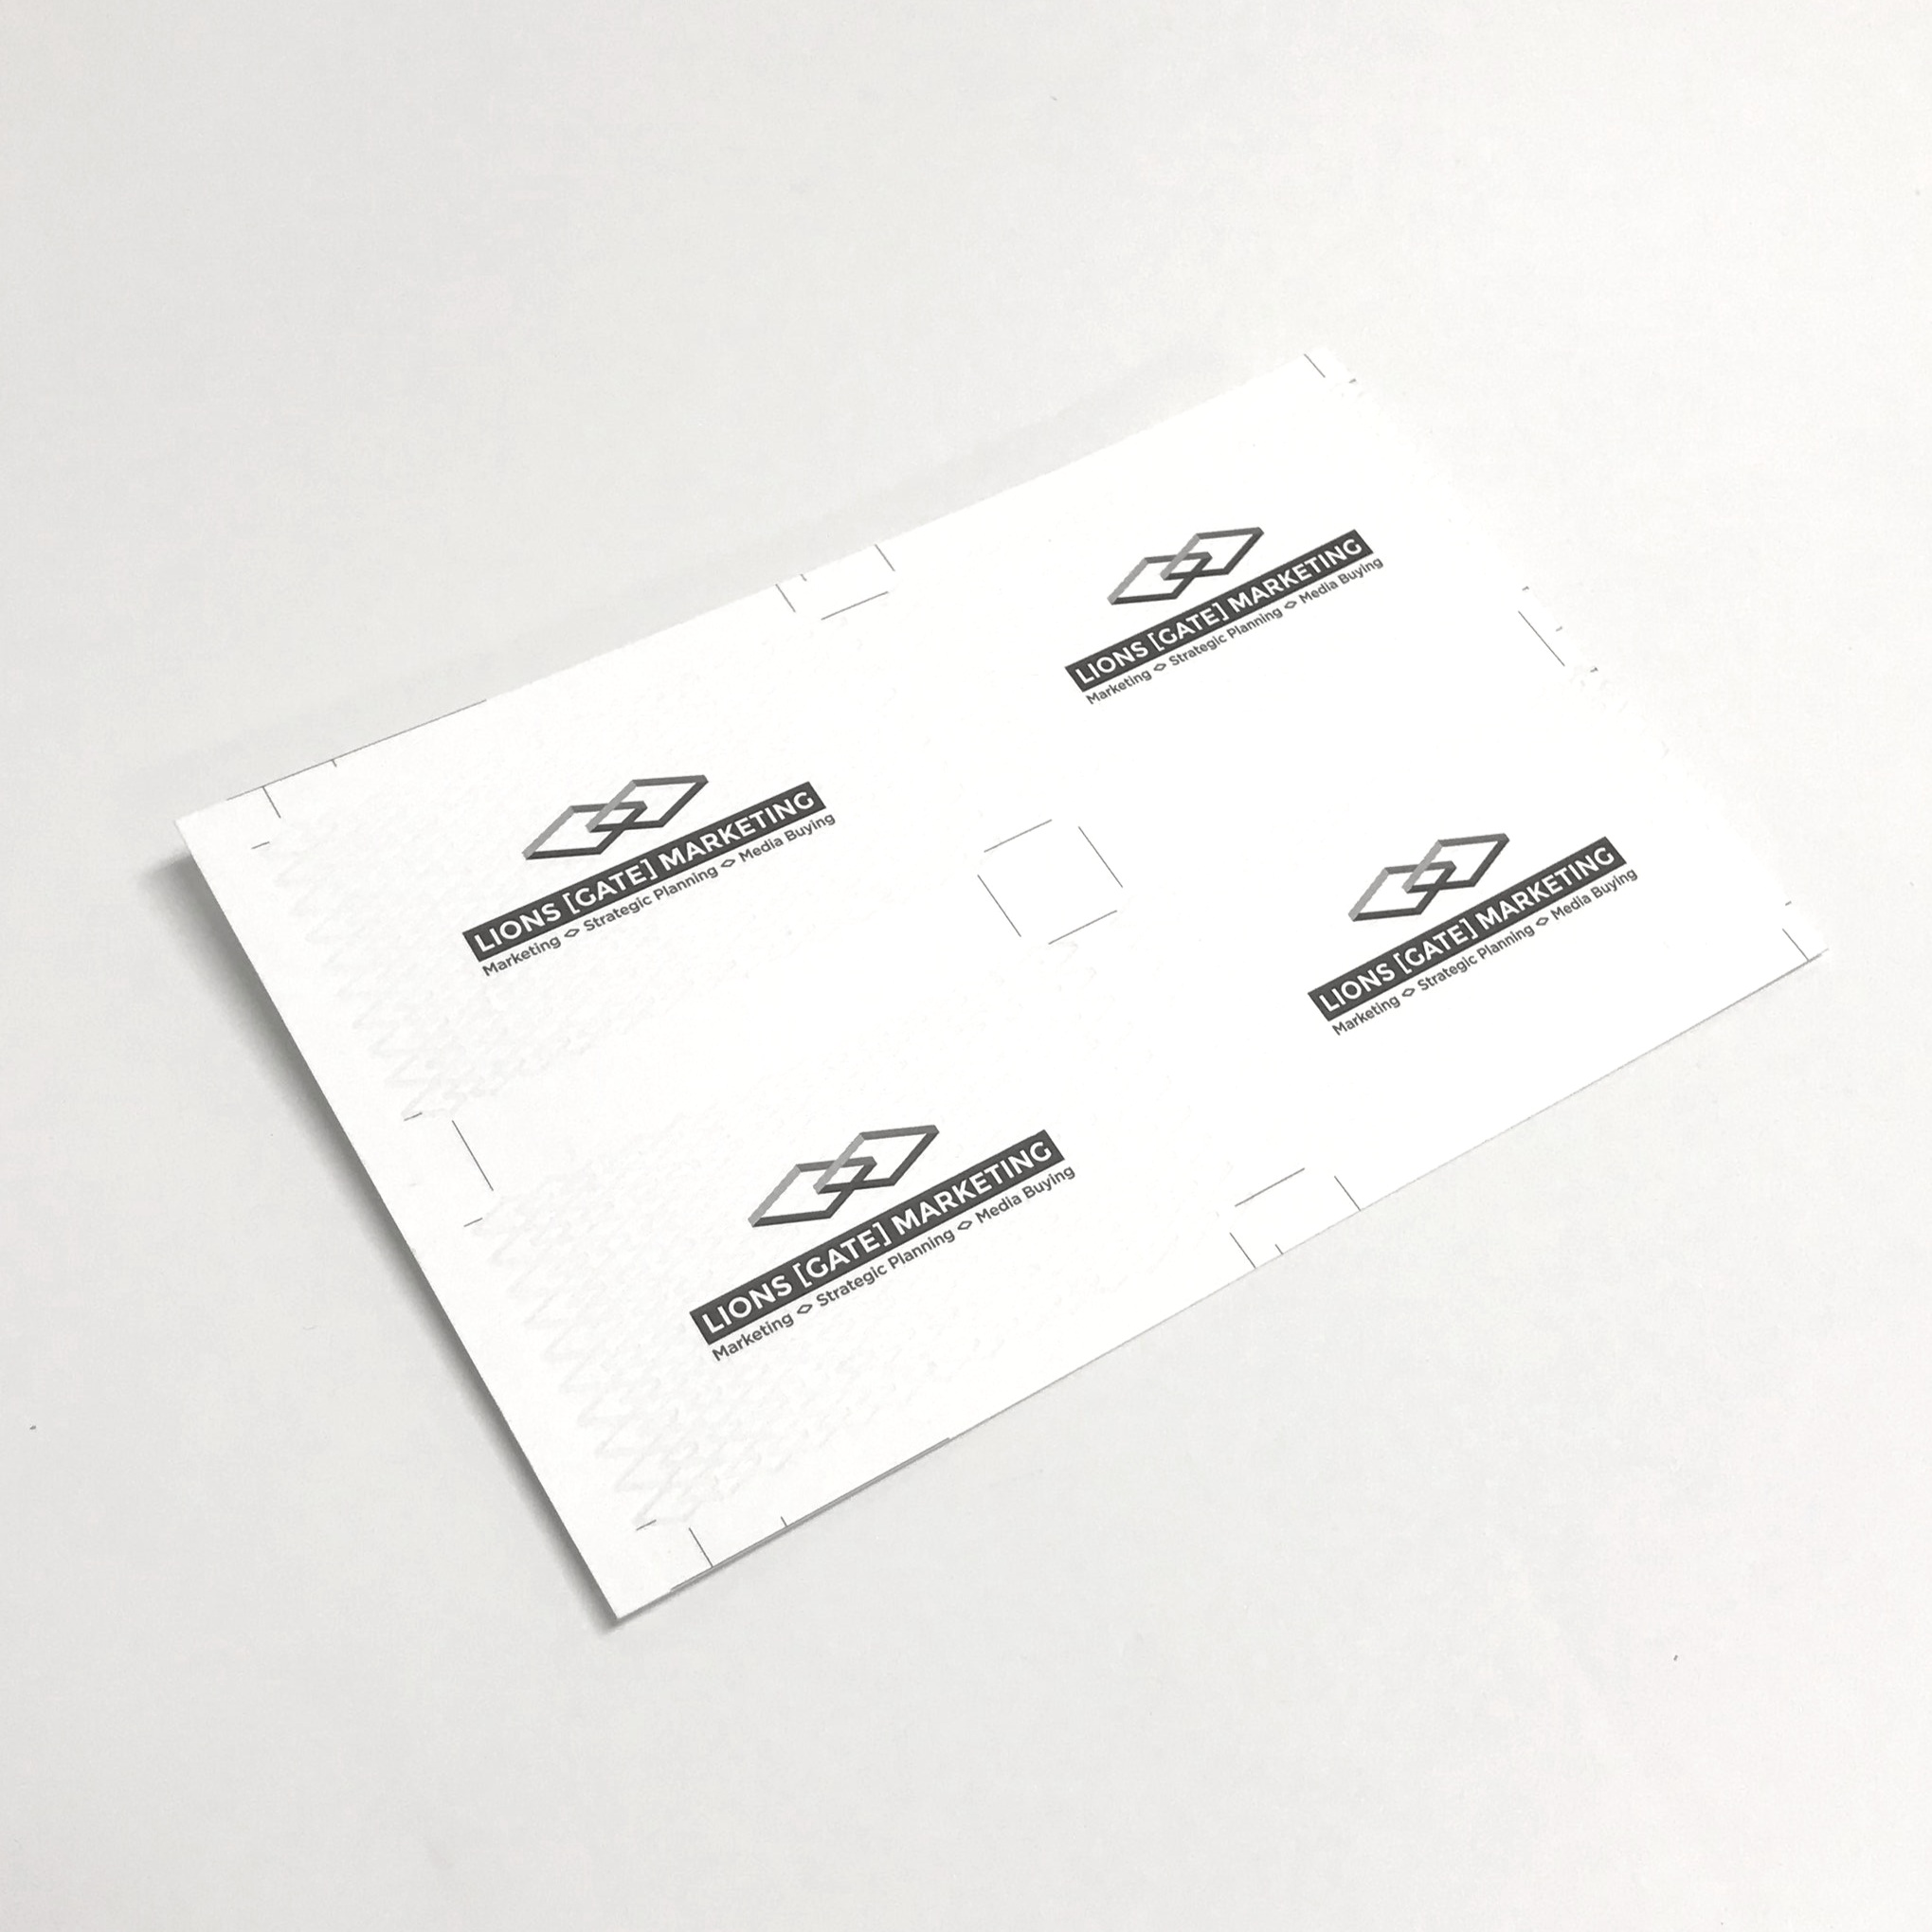 Specialty printed high quality business cards printed in Minnesota